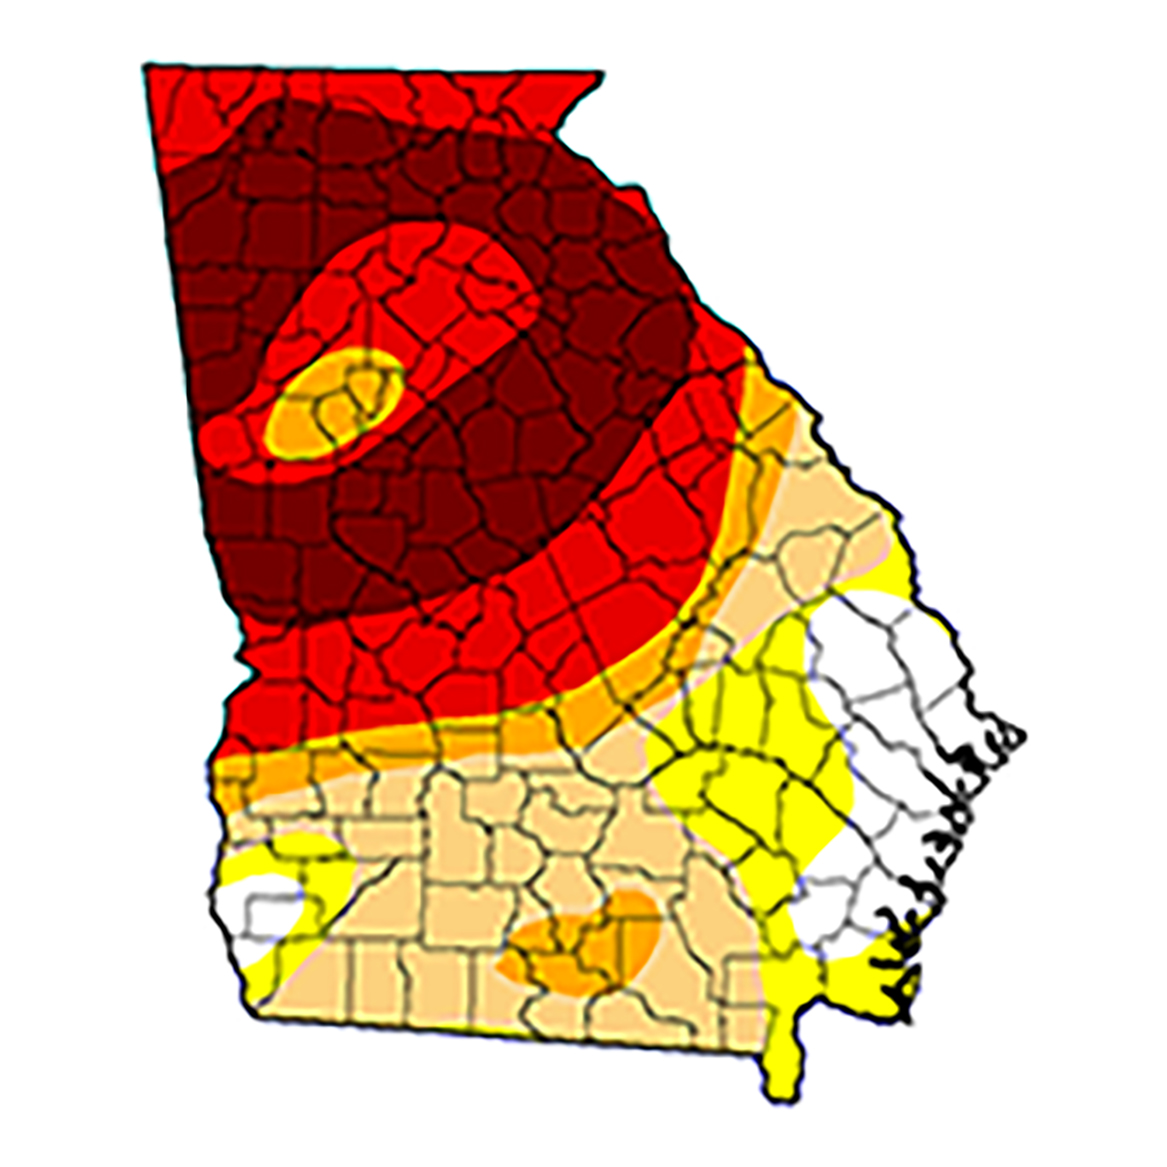 As of Dec. 27, 2016, this map of Georgia shows areas that are experiencing abnormally dry or drought conditions, according to the U.S. Drought Monitor. Image credit: USDA Drought Monitor.